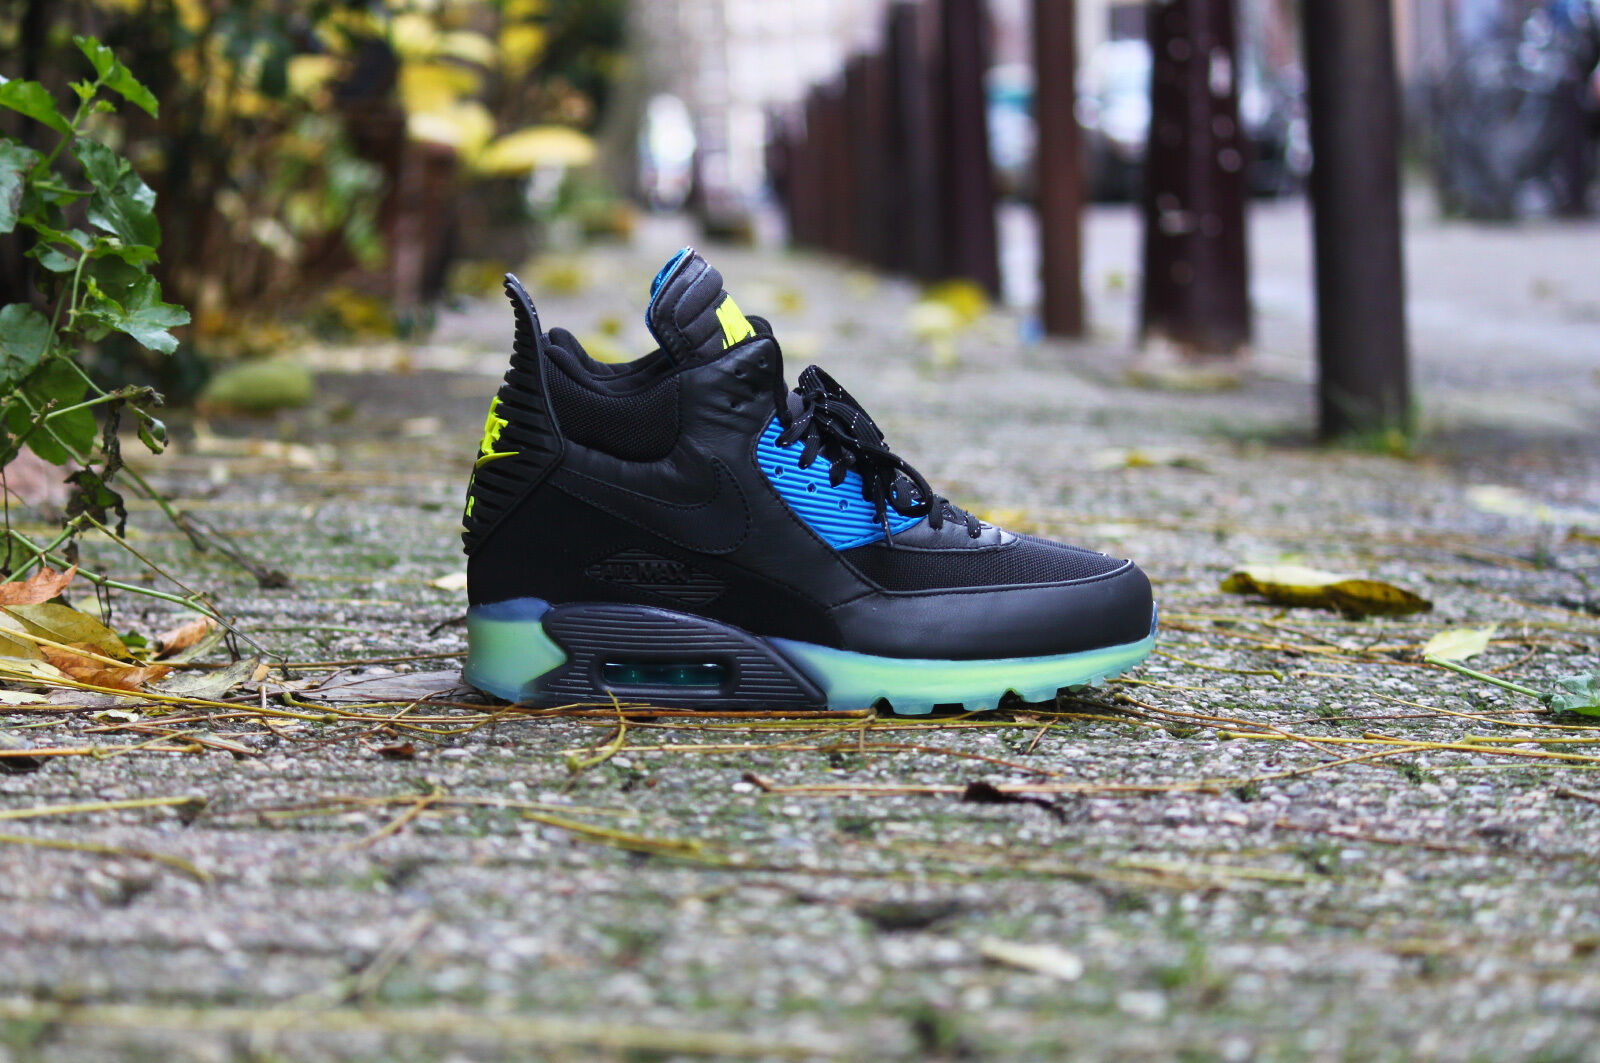 Nike air max 90 sneakerboot sneakerboot sneakerboot eis 684722-001 sz 7 schwarze asche blaue neon - foto 8fd1fd